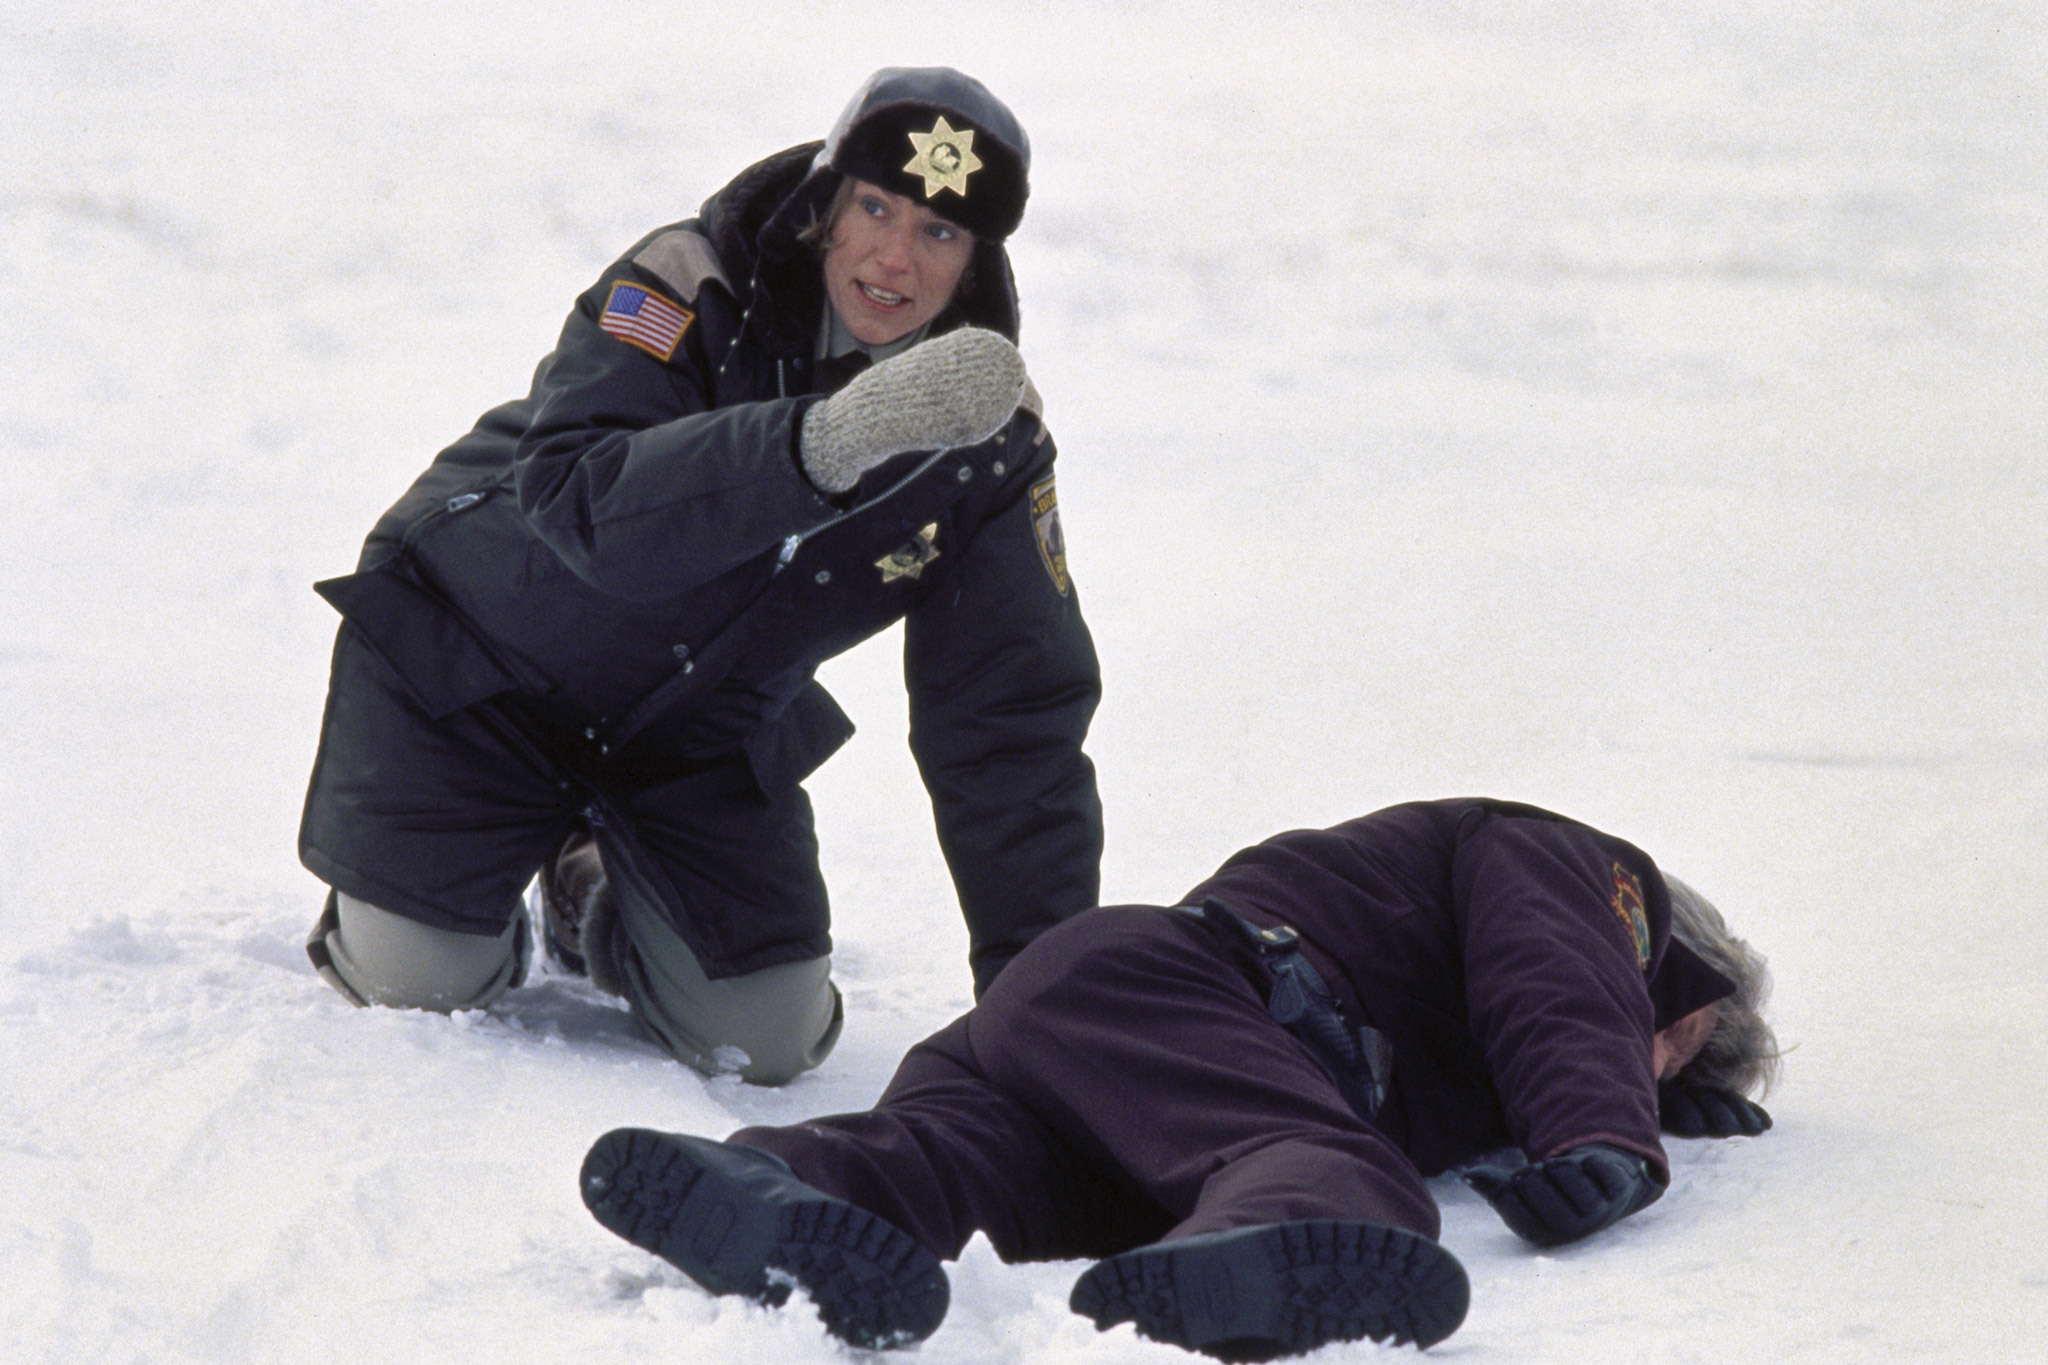 Frances McDormand in Fargo cop unifmorm, crouching in snow over a slumped body